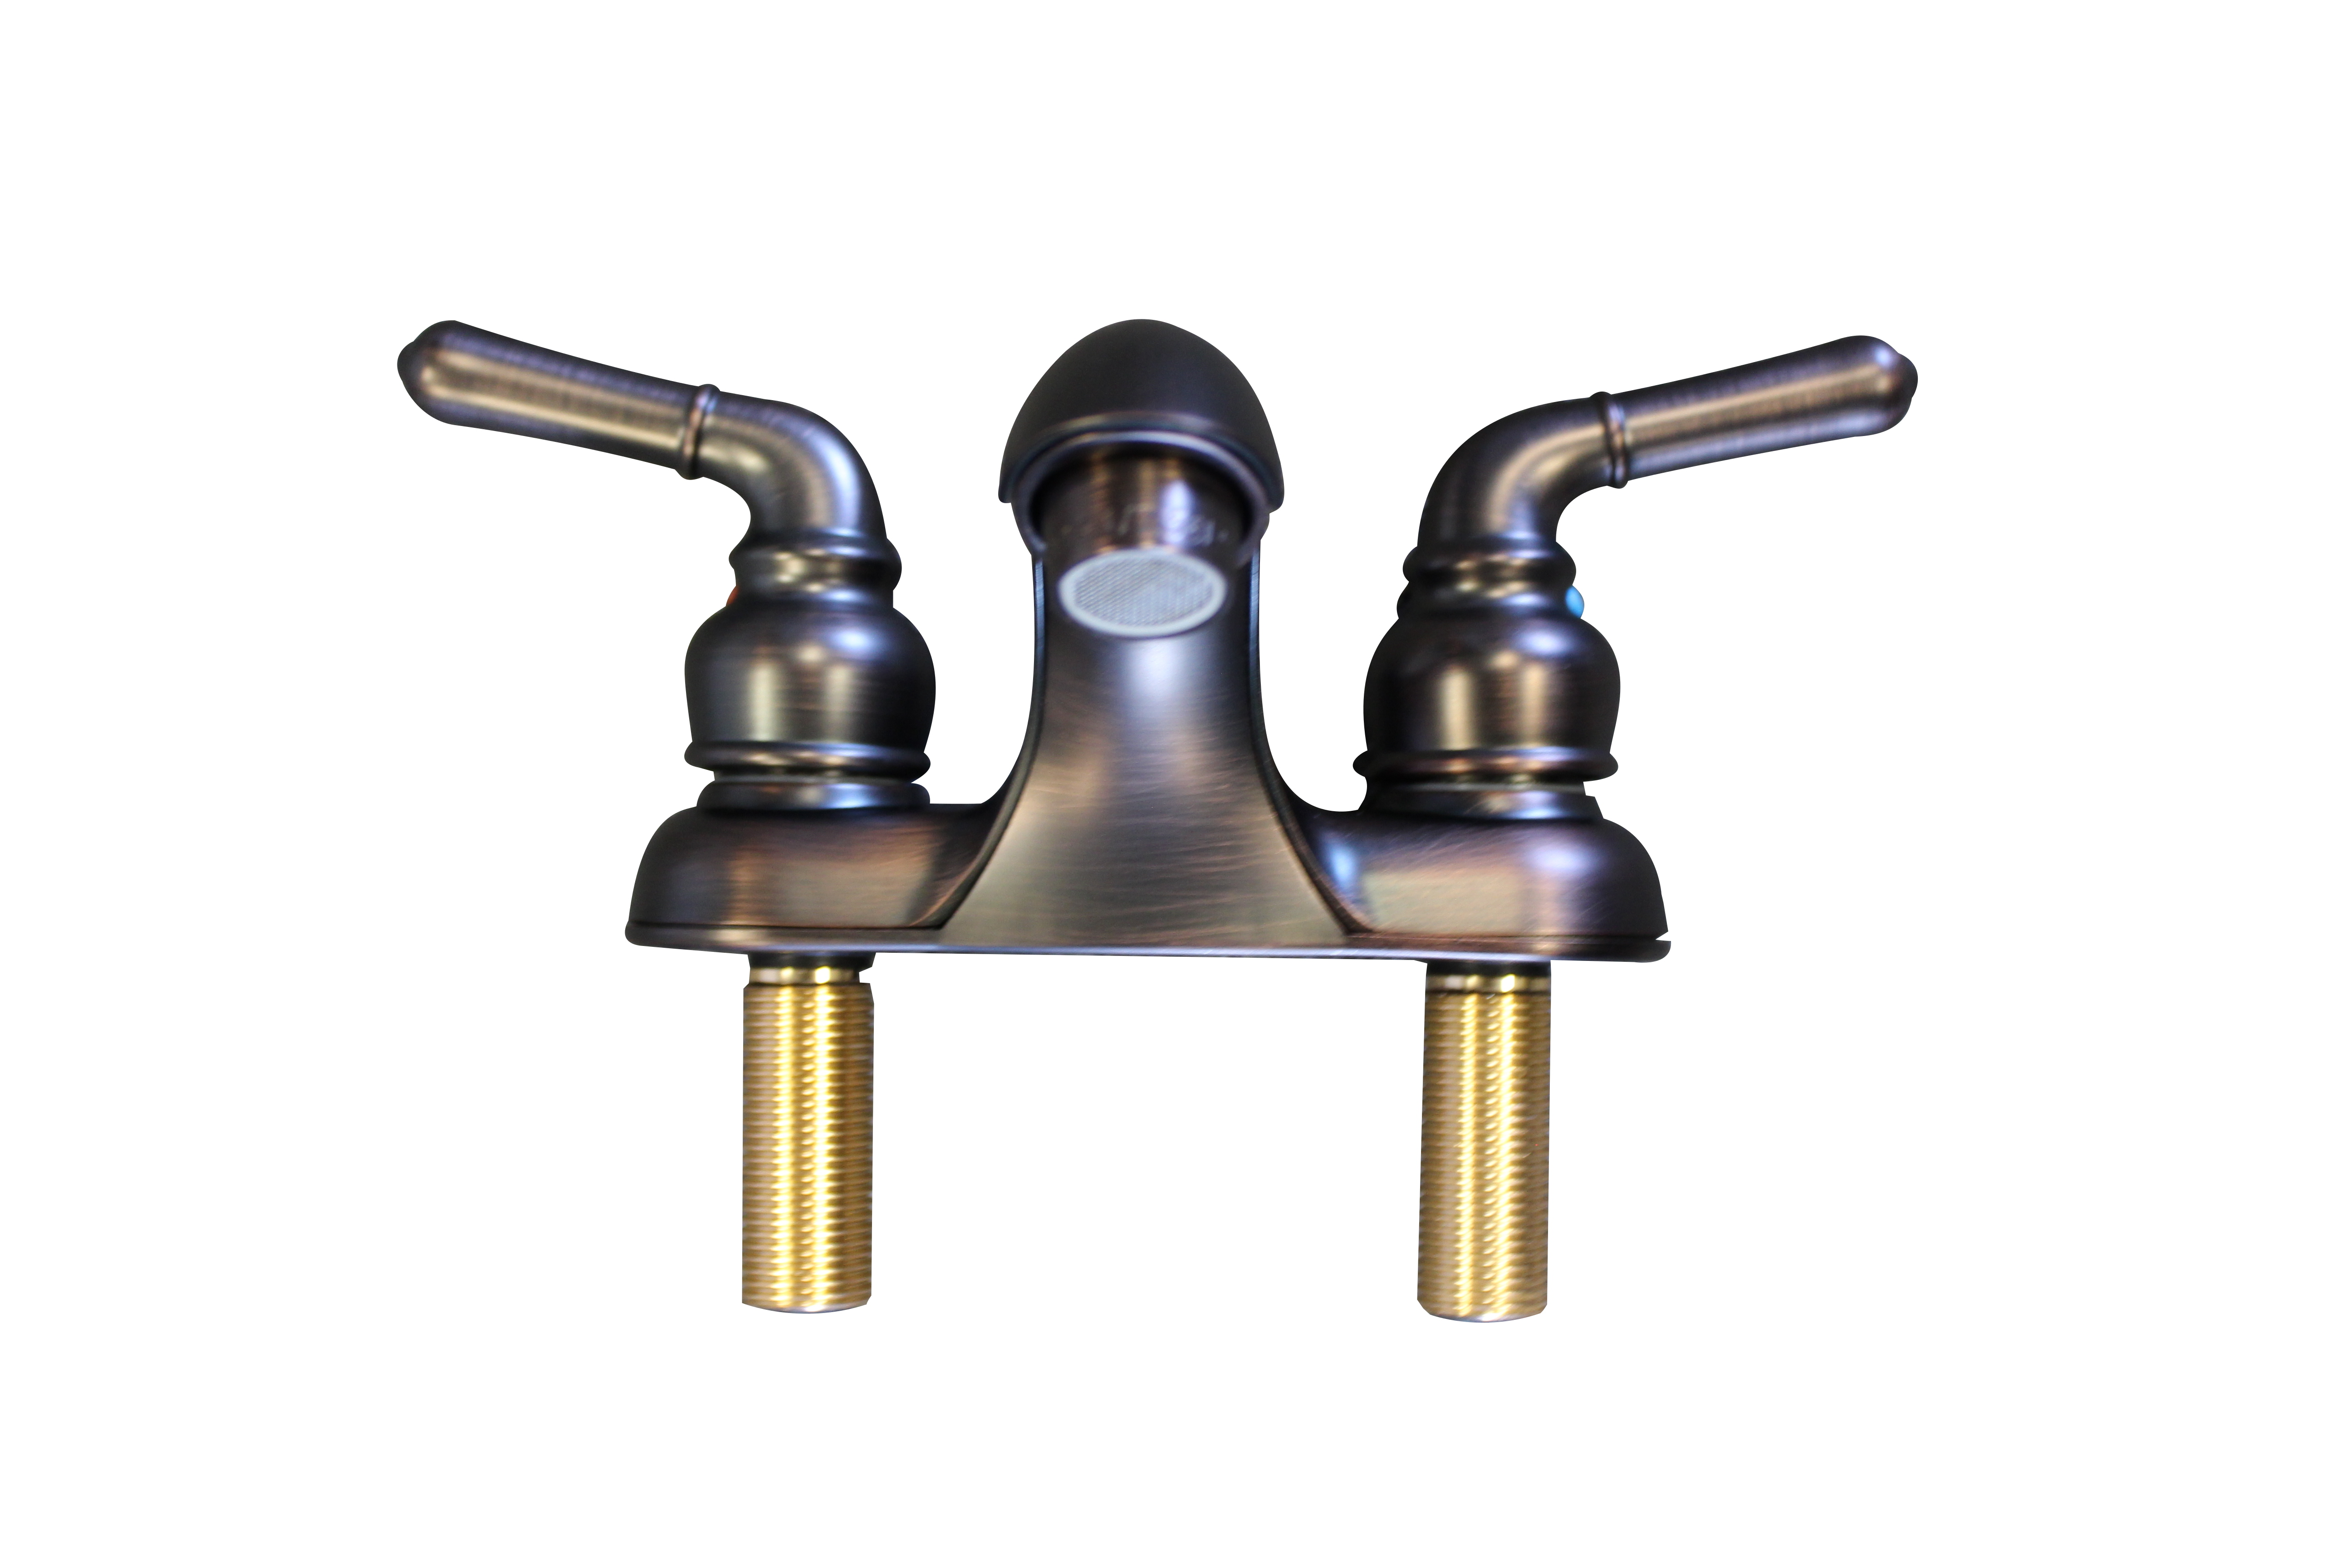 Utopia two handle bathroom faucet oil rubbed bronze